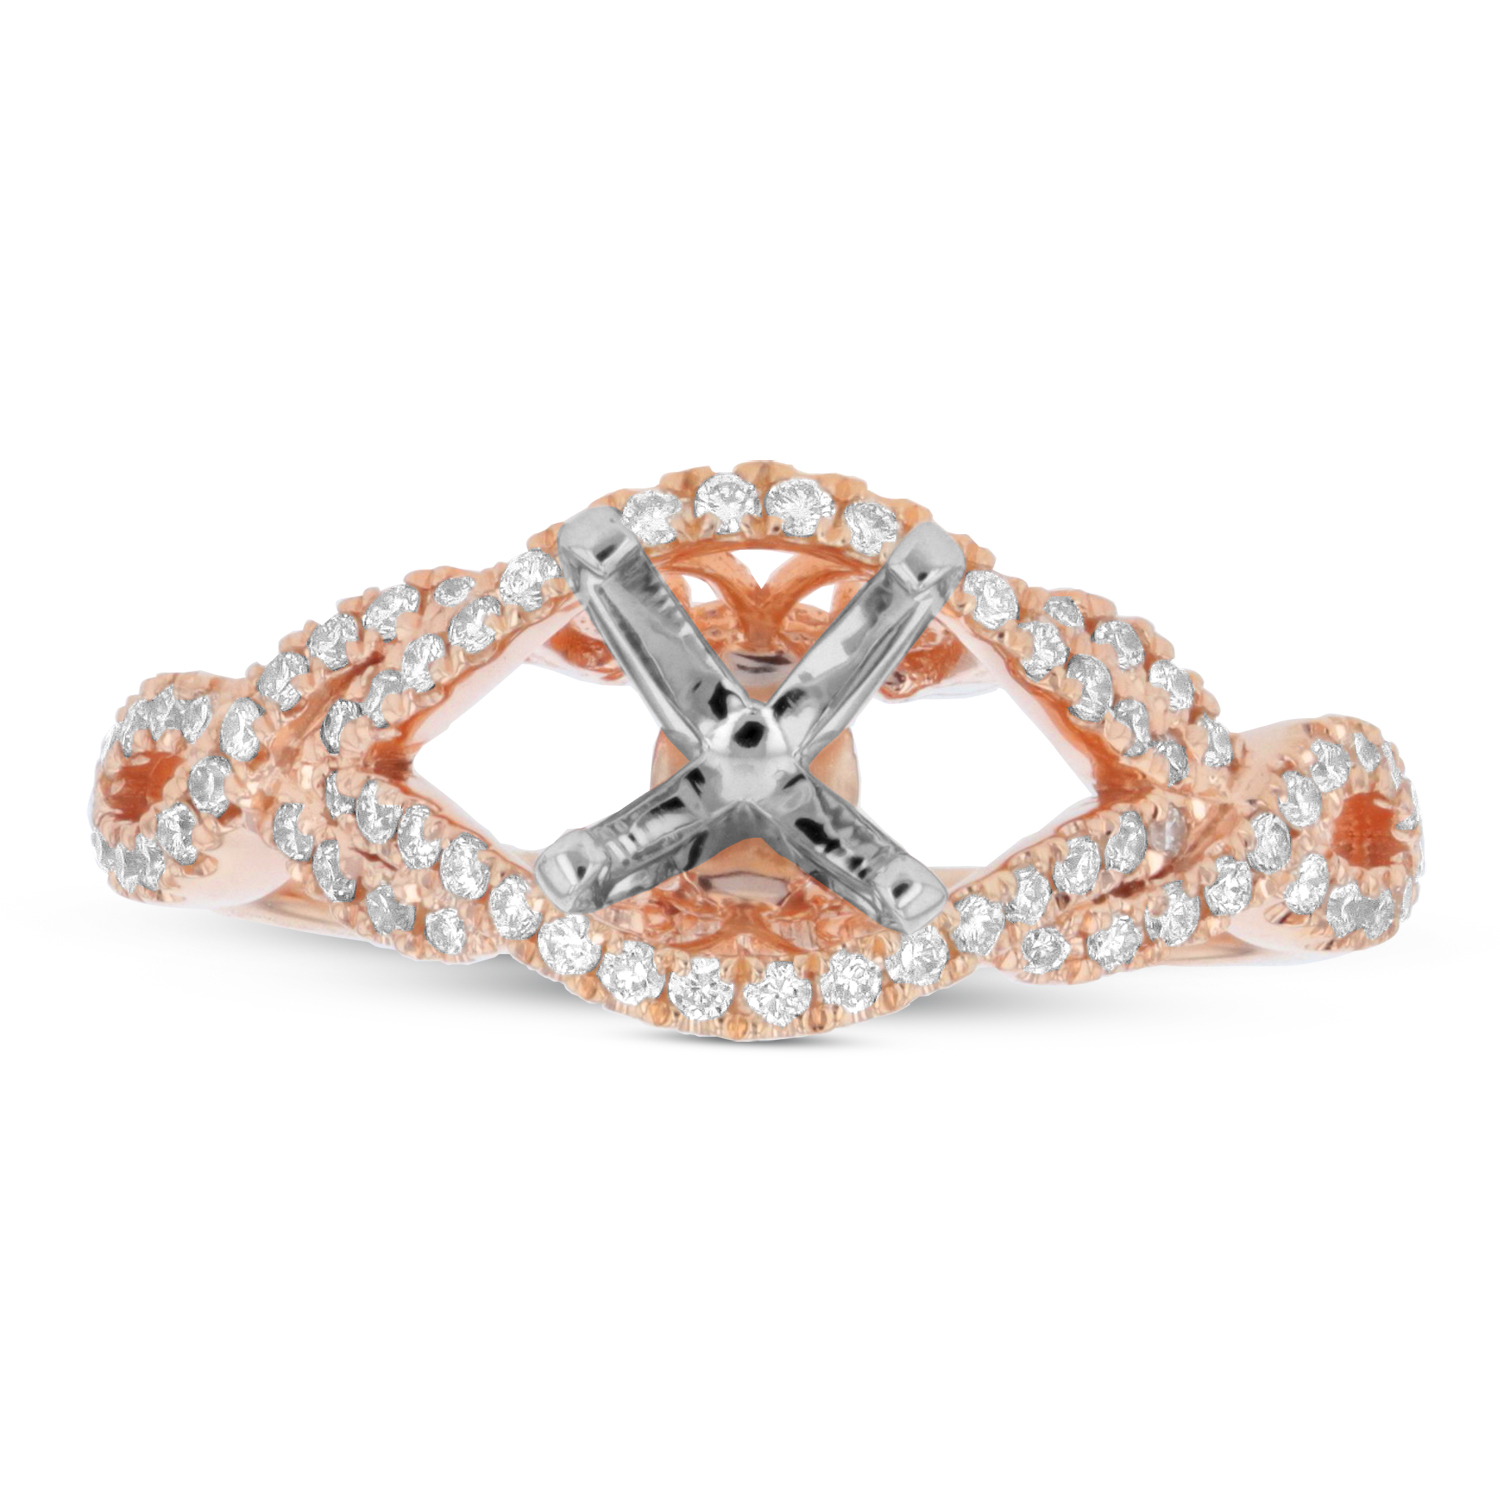 View 0.30ctw Diamond Semi Mount in 14k Rose Gold